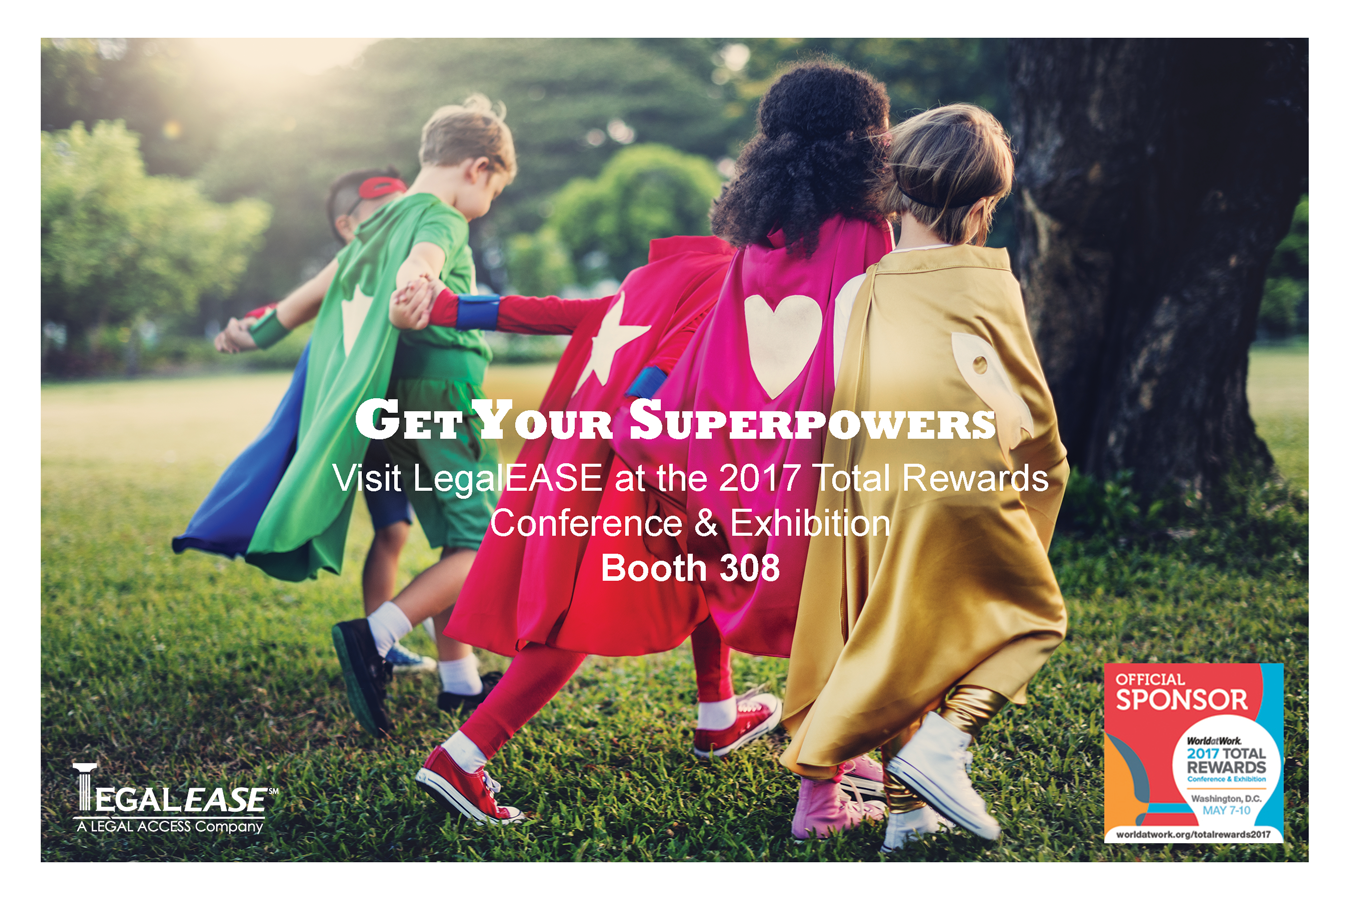 Get your superhero powers at booth 308!